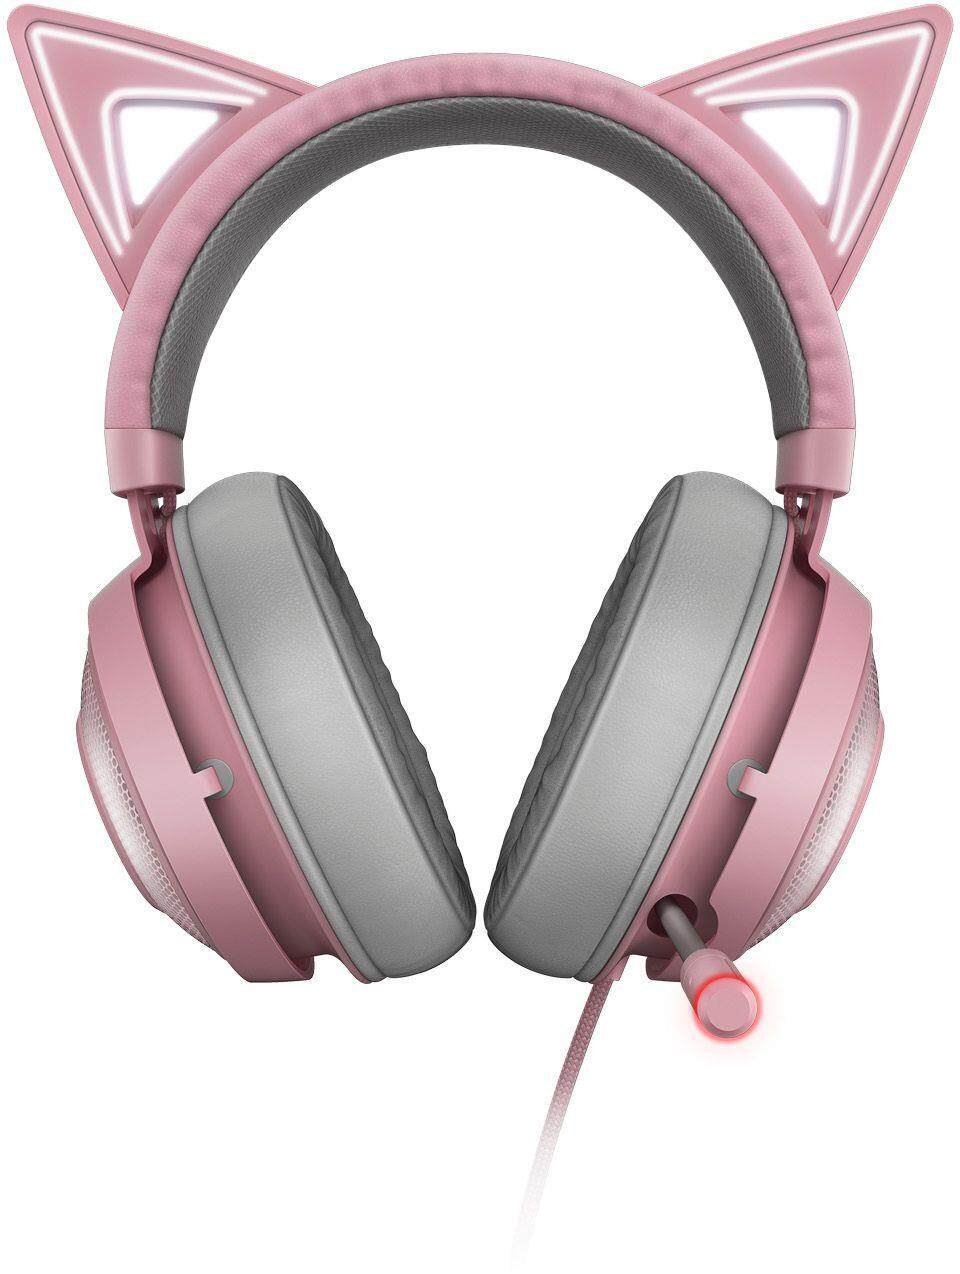 Razer Kraken Kitty Edition Wired USB Gaming Headset (RZ04-02980200-R3M1), Quartz Pink, THX Spartial Audio, Cooling-Gel Ear Cushions, Light, Durable Build, Active Noise-Canceling Microphone